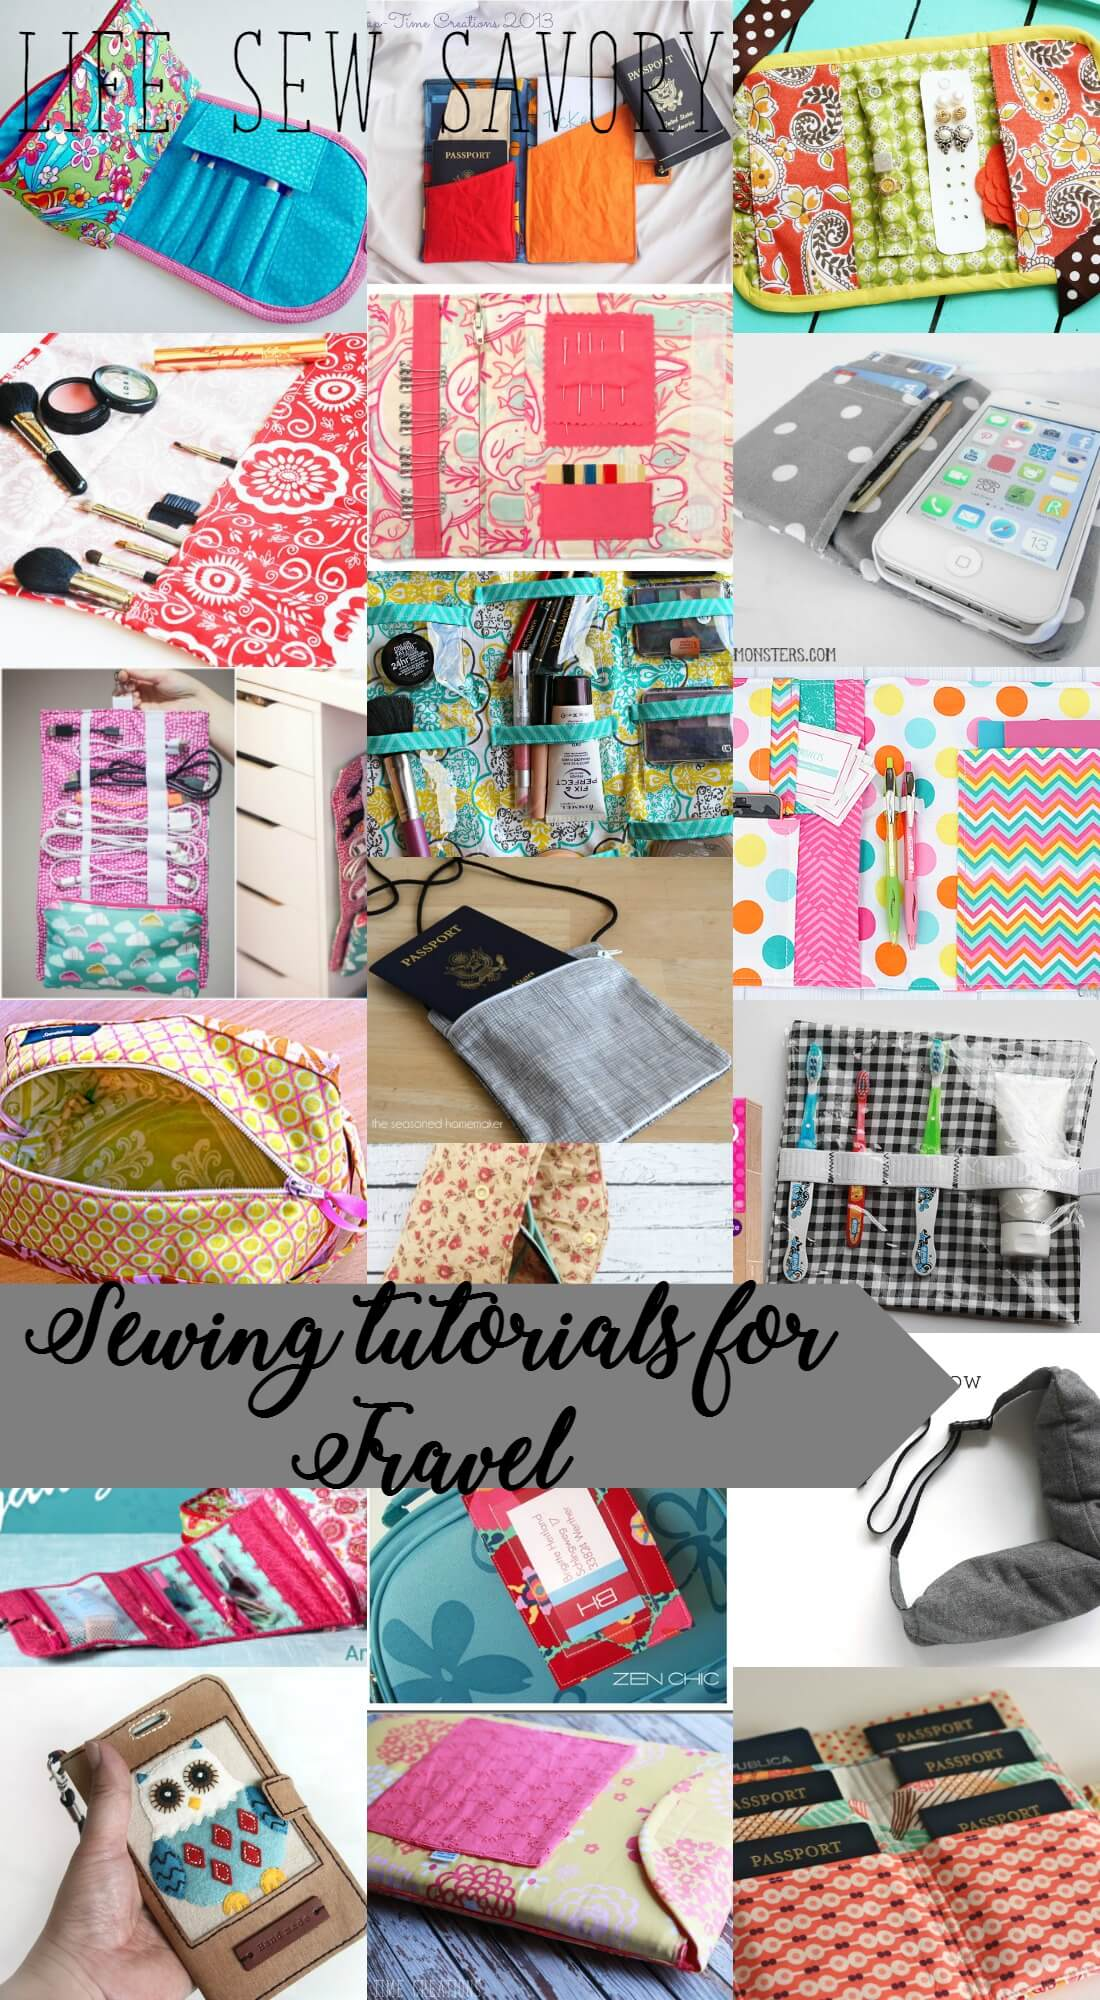 Sewing tutorials for travel from Life Sew Savory